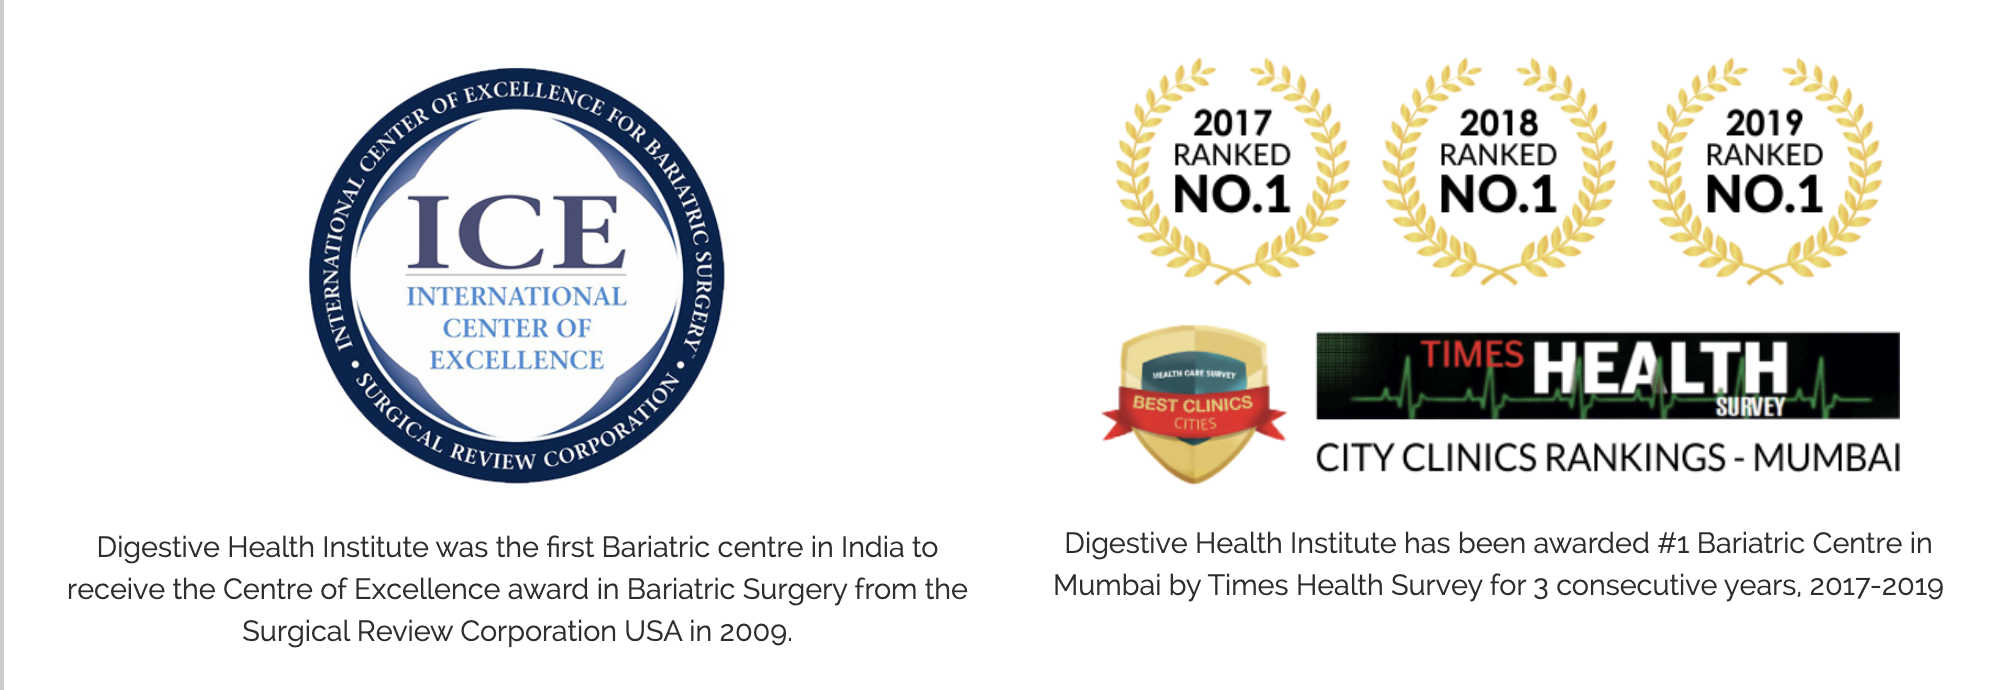 Digestive Health Institute - Centre Of Excellence Award in Bariatic Surgery